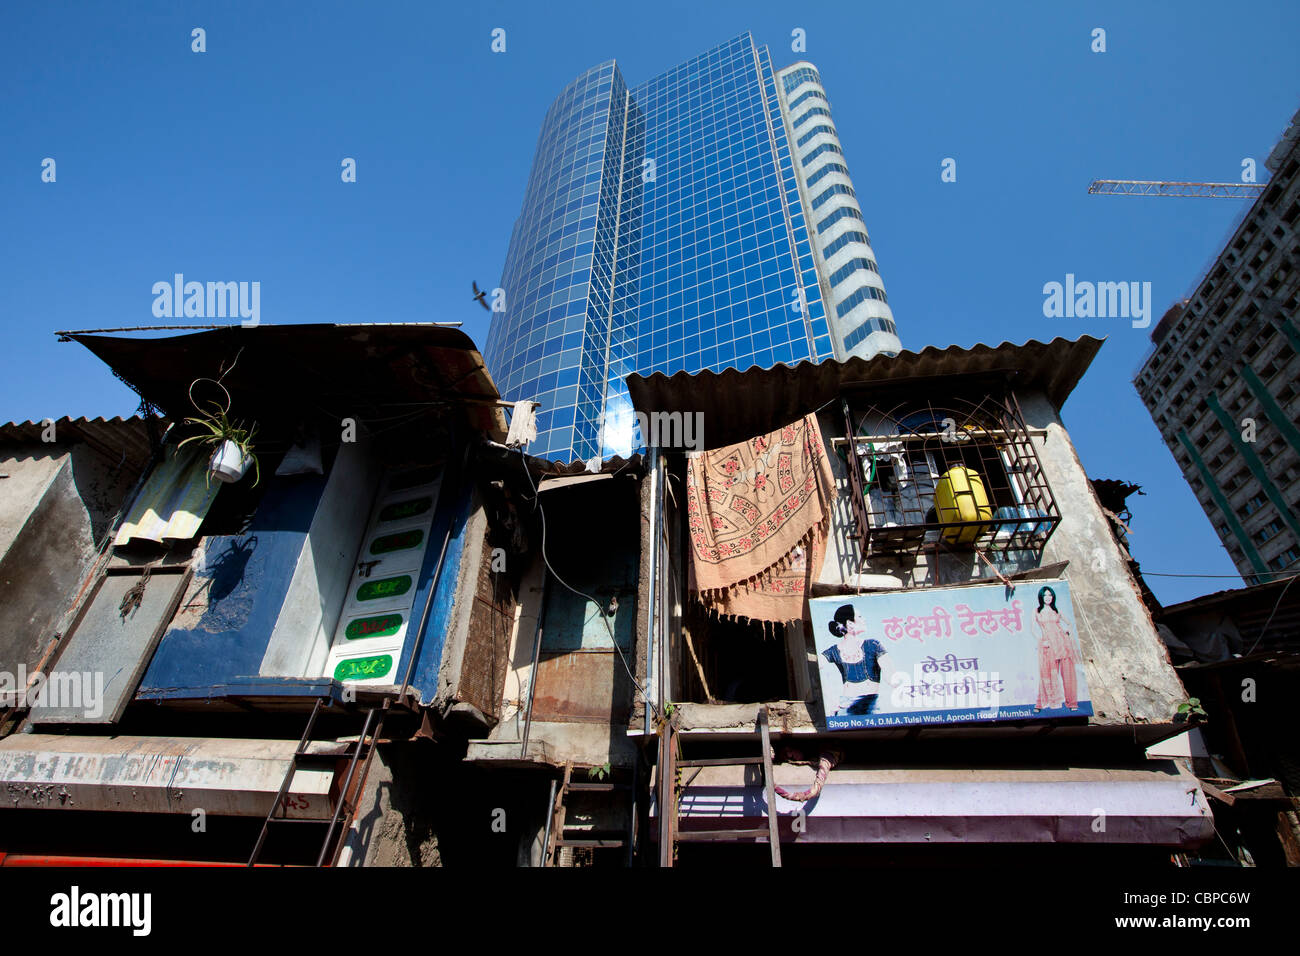 Essar House office development for Essar Group by slums in